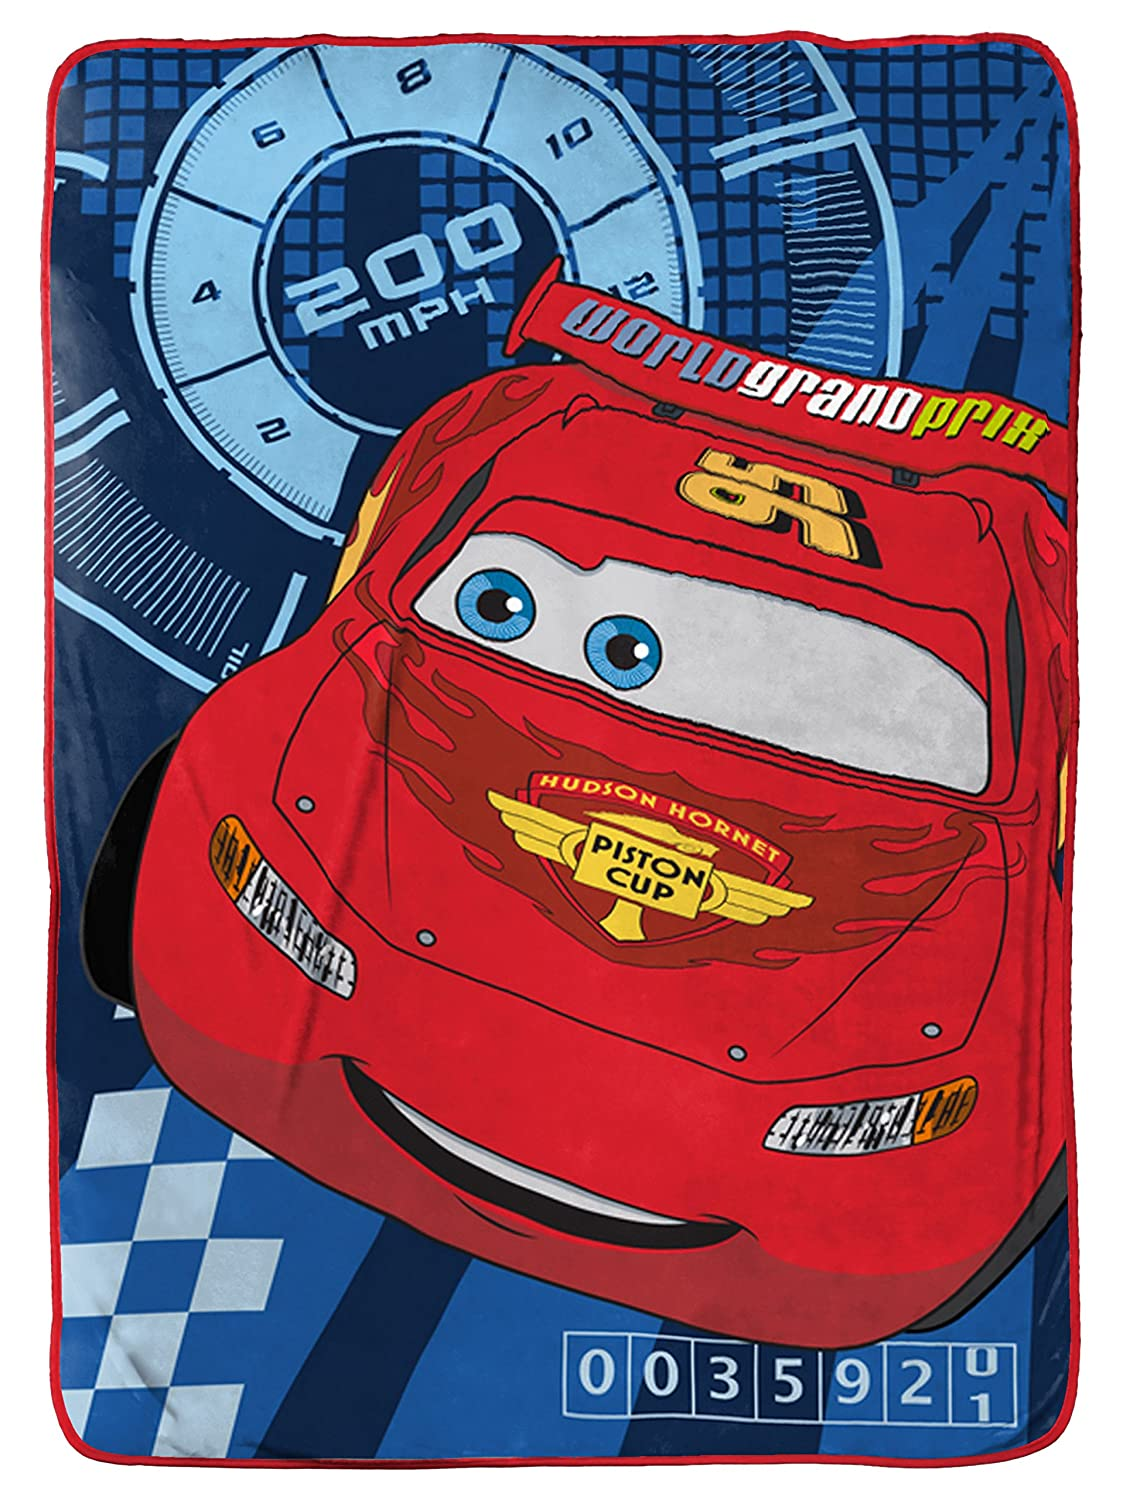 Disney/Pixar Cars 3 Top Speed Blue Plush 40 x 50 Travel Blanket with Lightning McQueen & Jackson Storm (Official Disney/Pixar Product) Jay Franco and Sons Inc. JF16972ECD